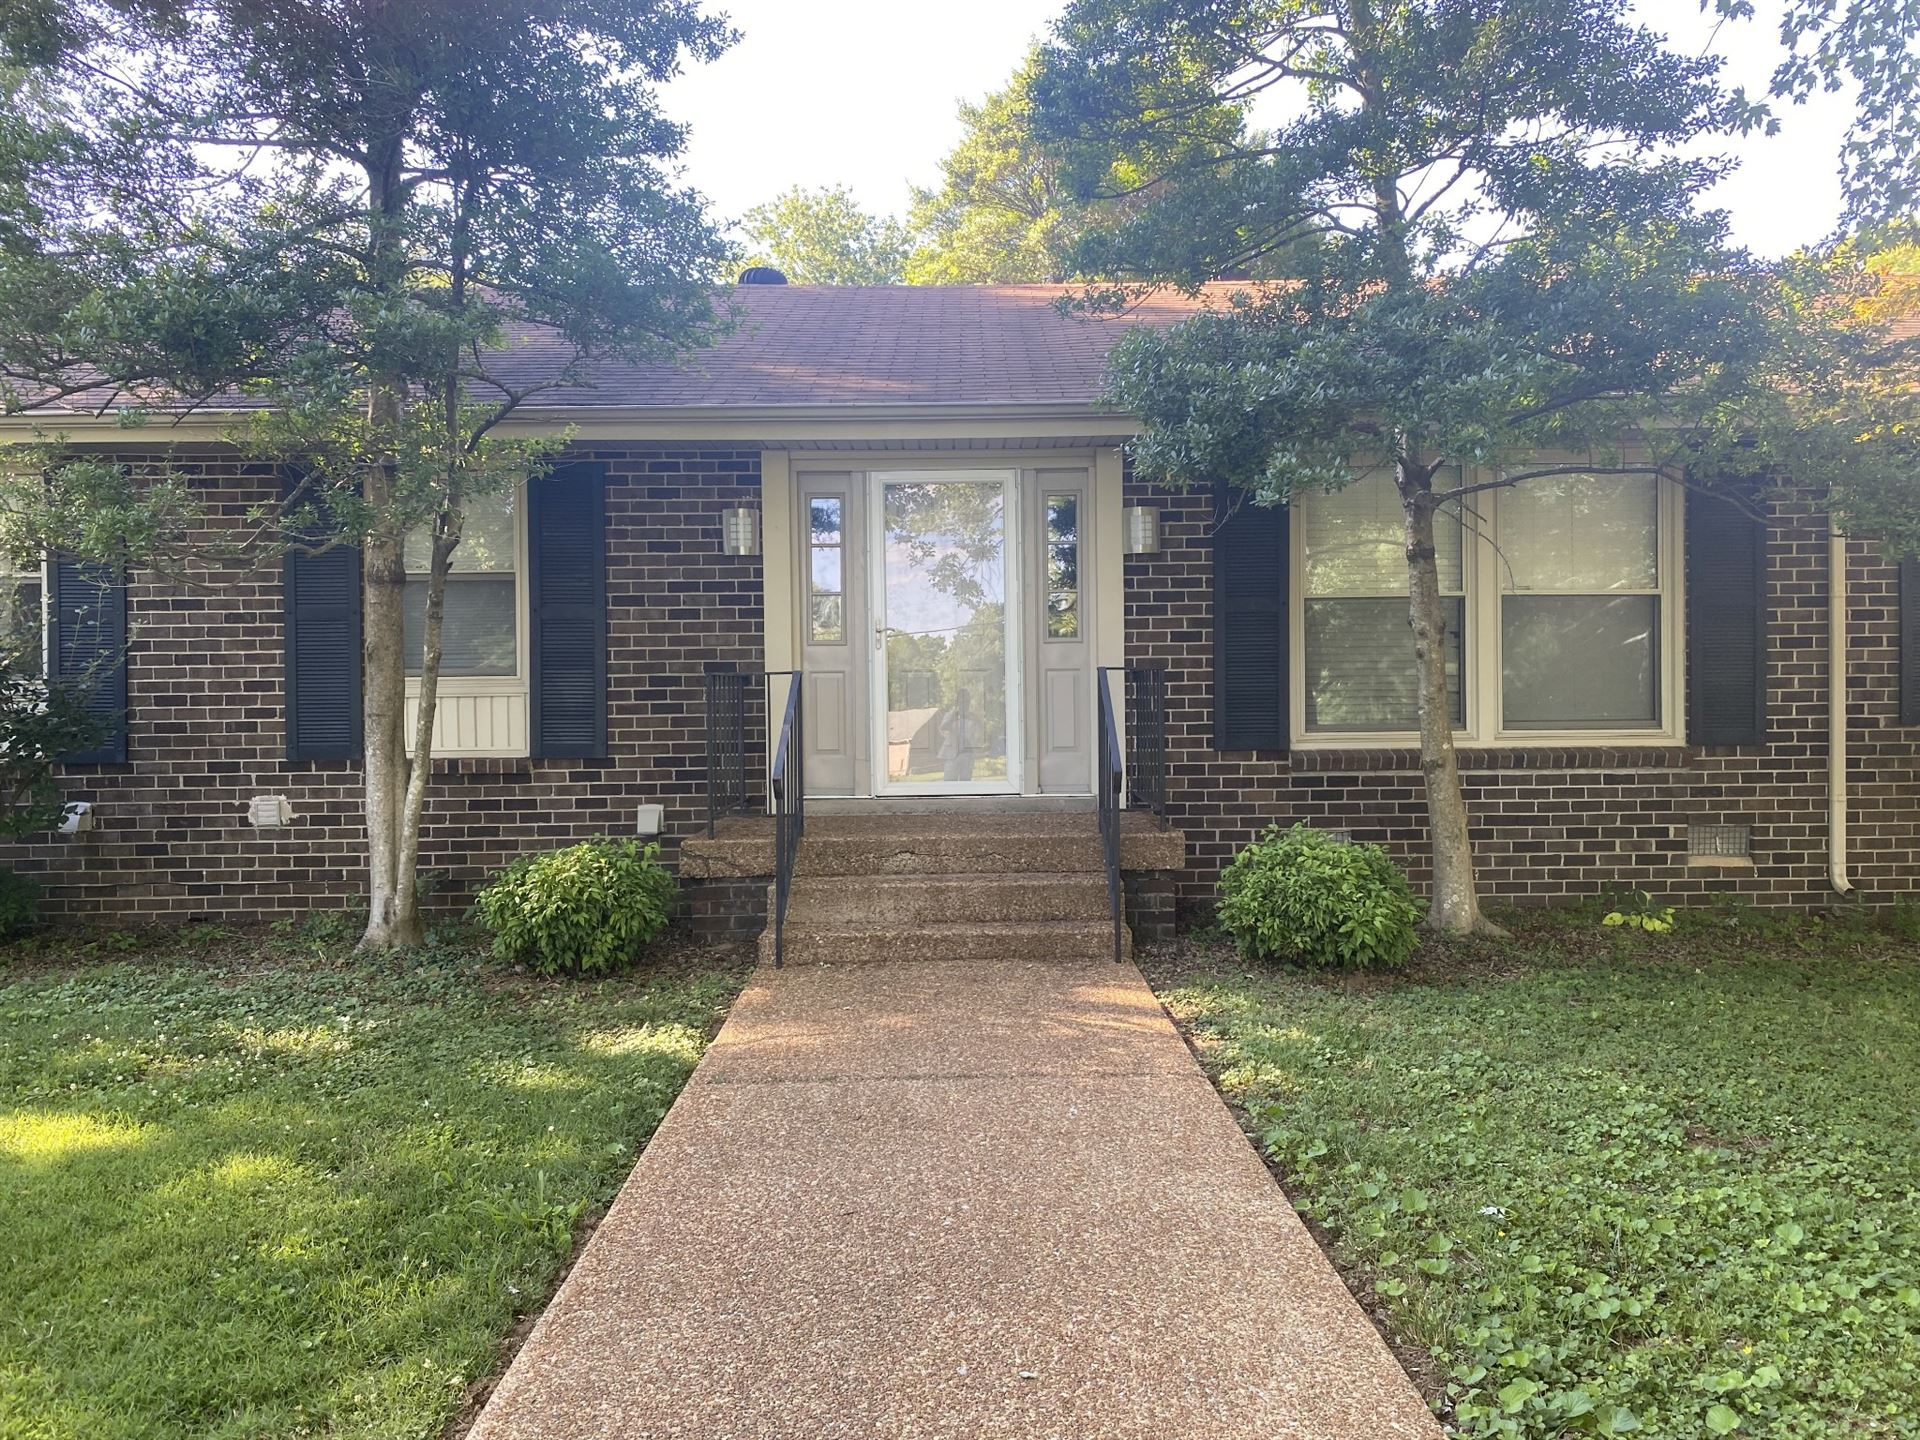 Photo of 9128 Ford Dr, Brentwood, TN 37027 (MLS # 2263152)